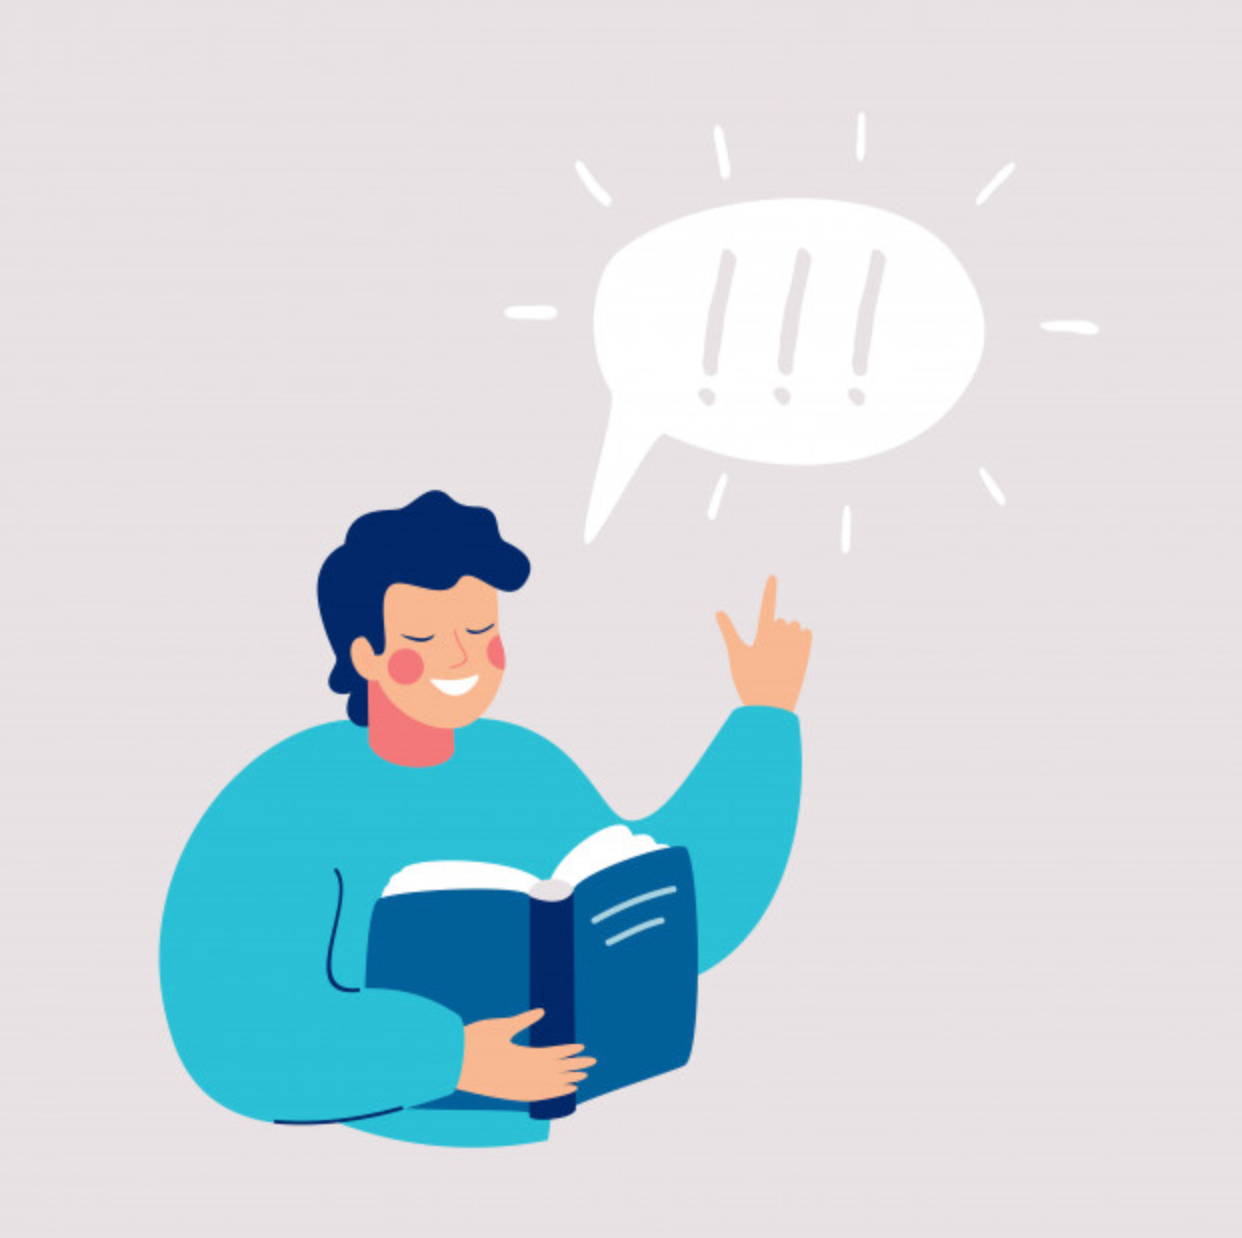 Image of an illustrated man holding a book, speaking out loud. There is a speech bubble with asterisks in it.